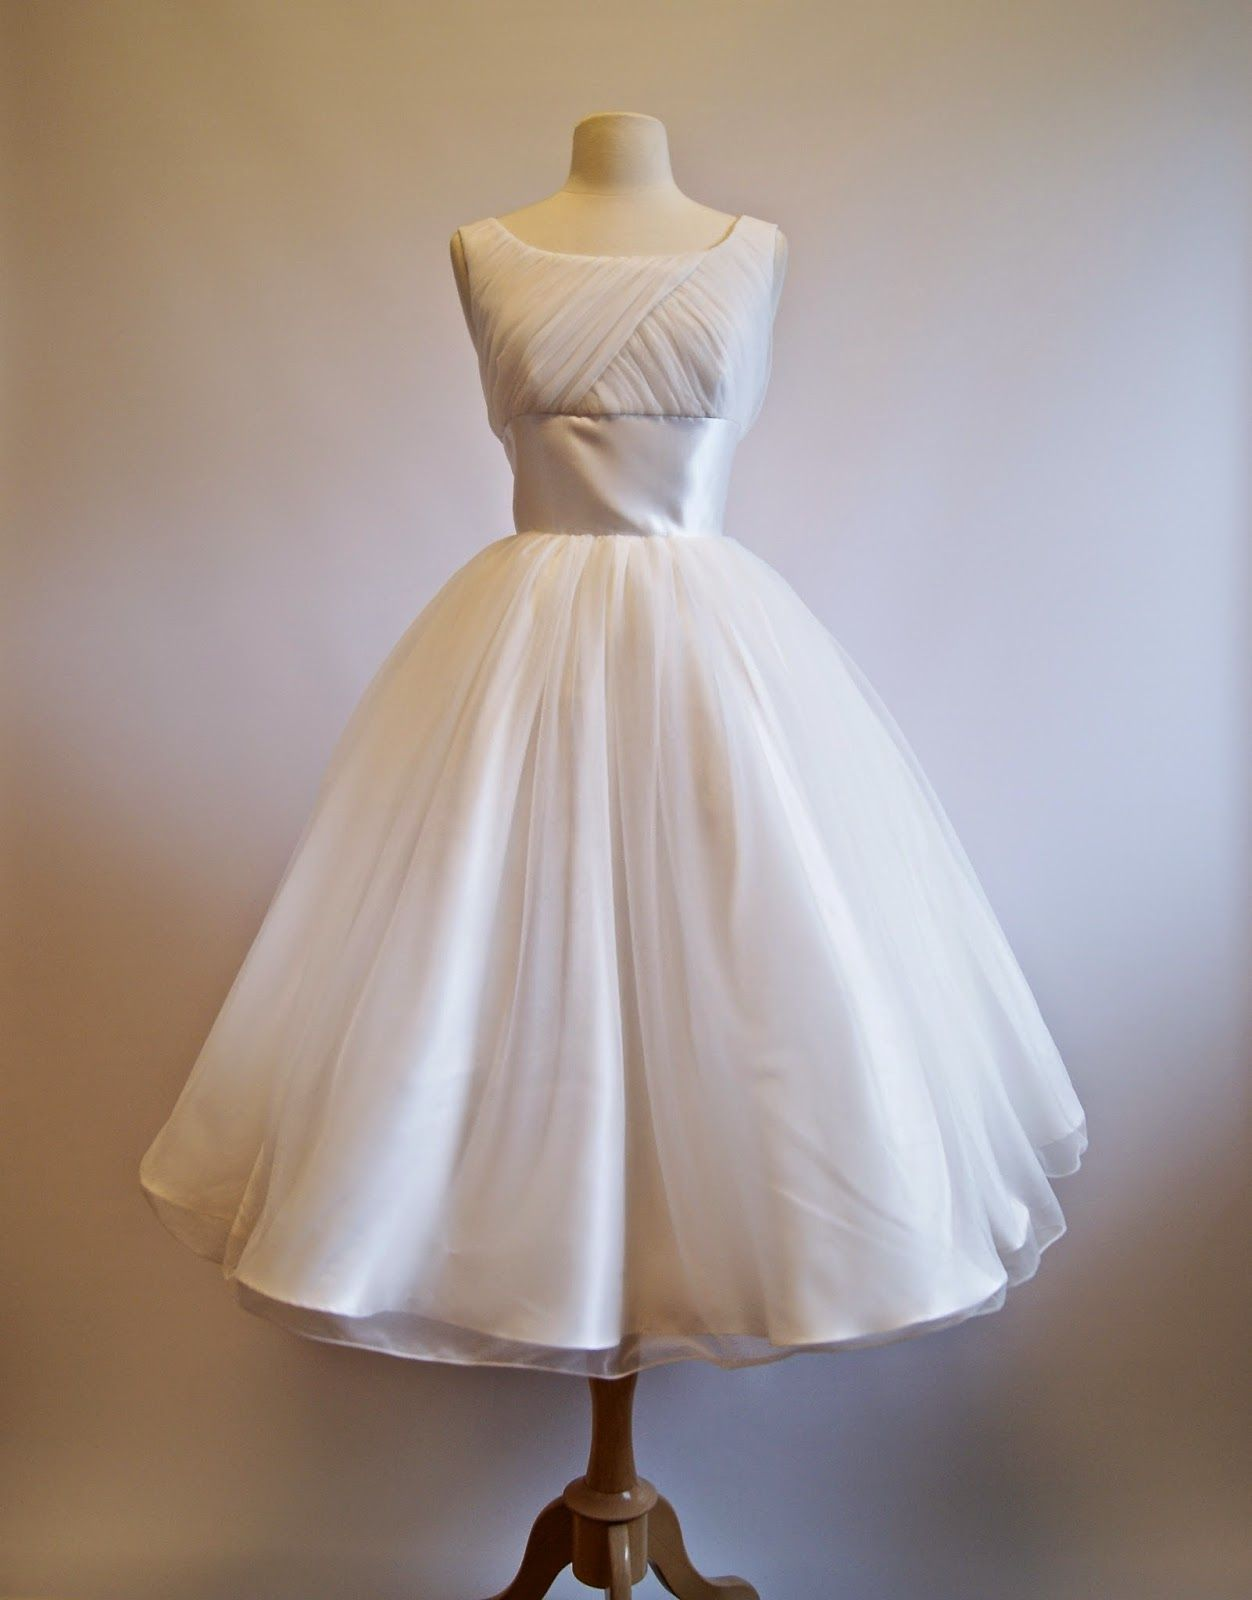 Xtabay Vintage Clothing Boutique Portland Oregon Vintage Dresses Vintage Clothing Boutique Vintage 1950s Dresses